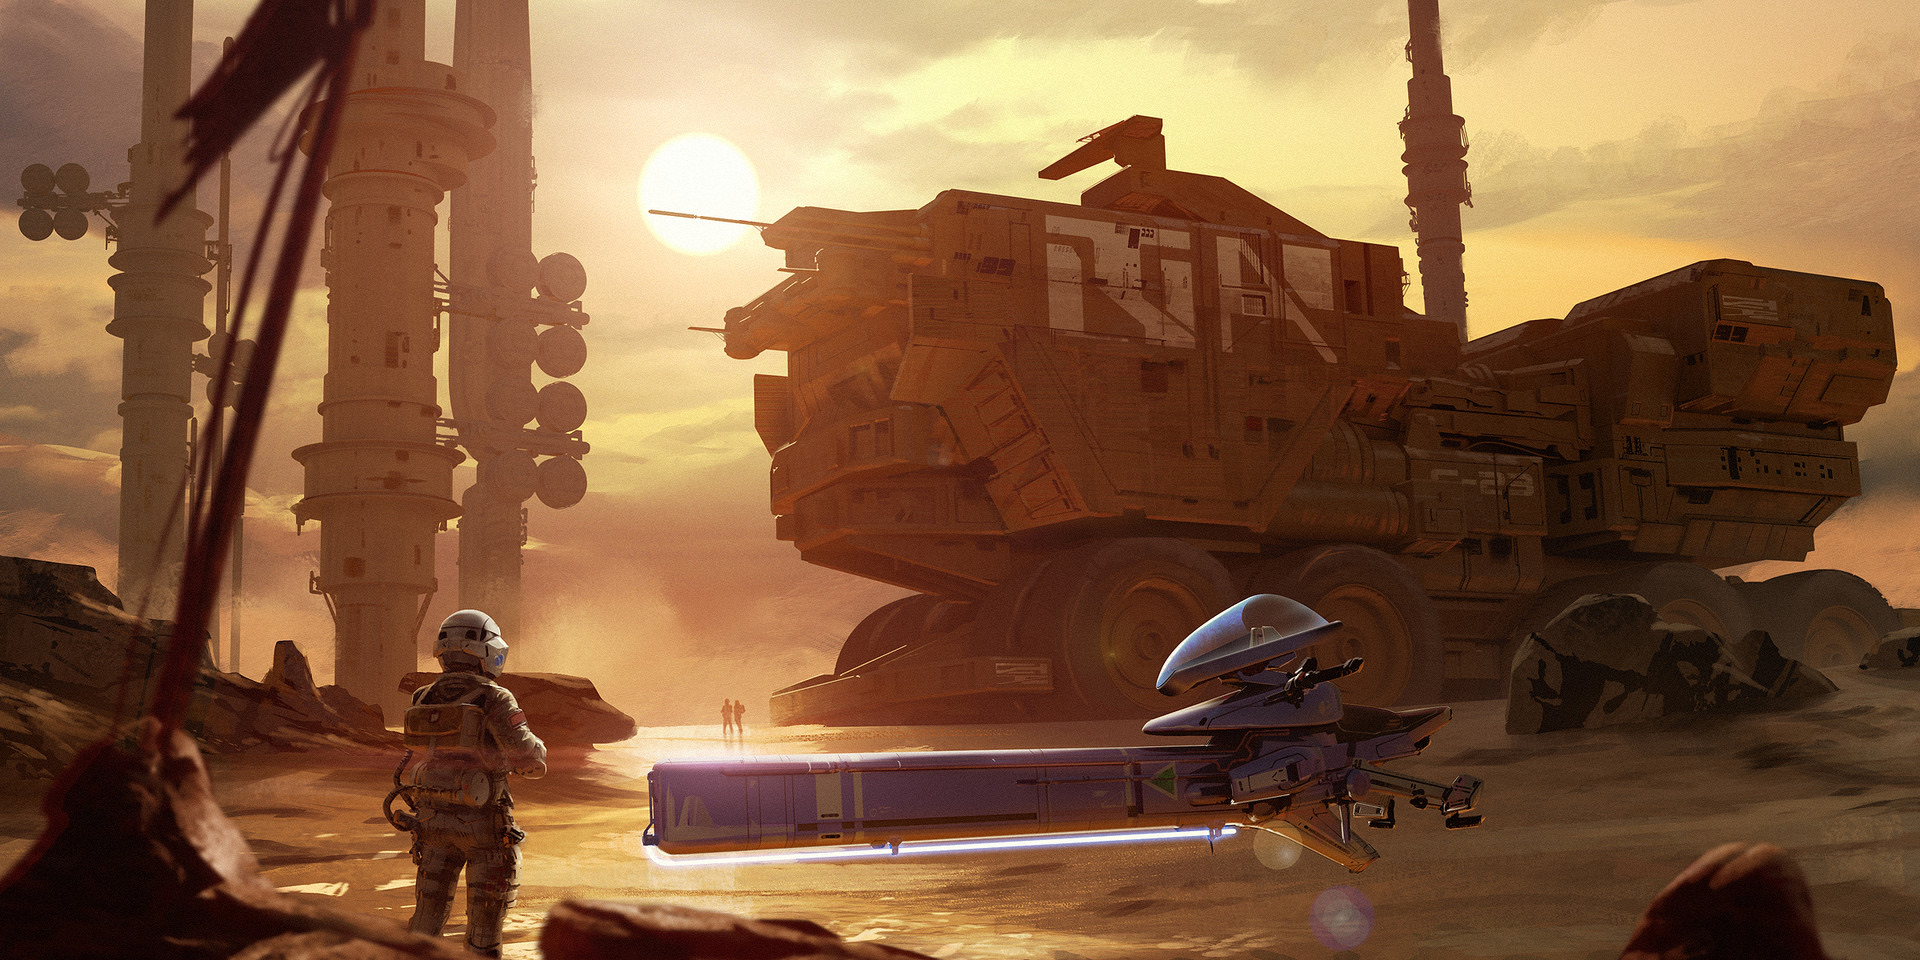 The Incredible Sci-Fi Art of Isaac Hannaford